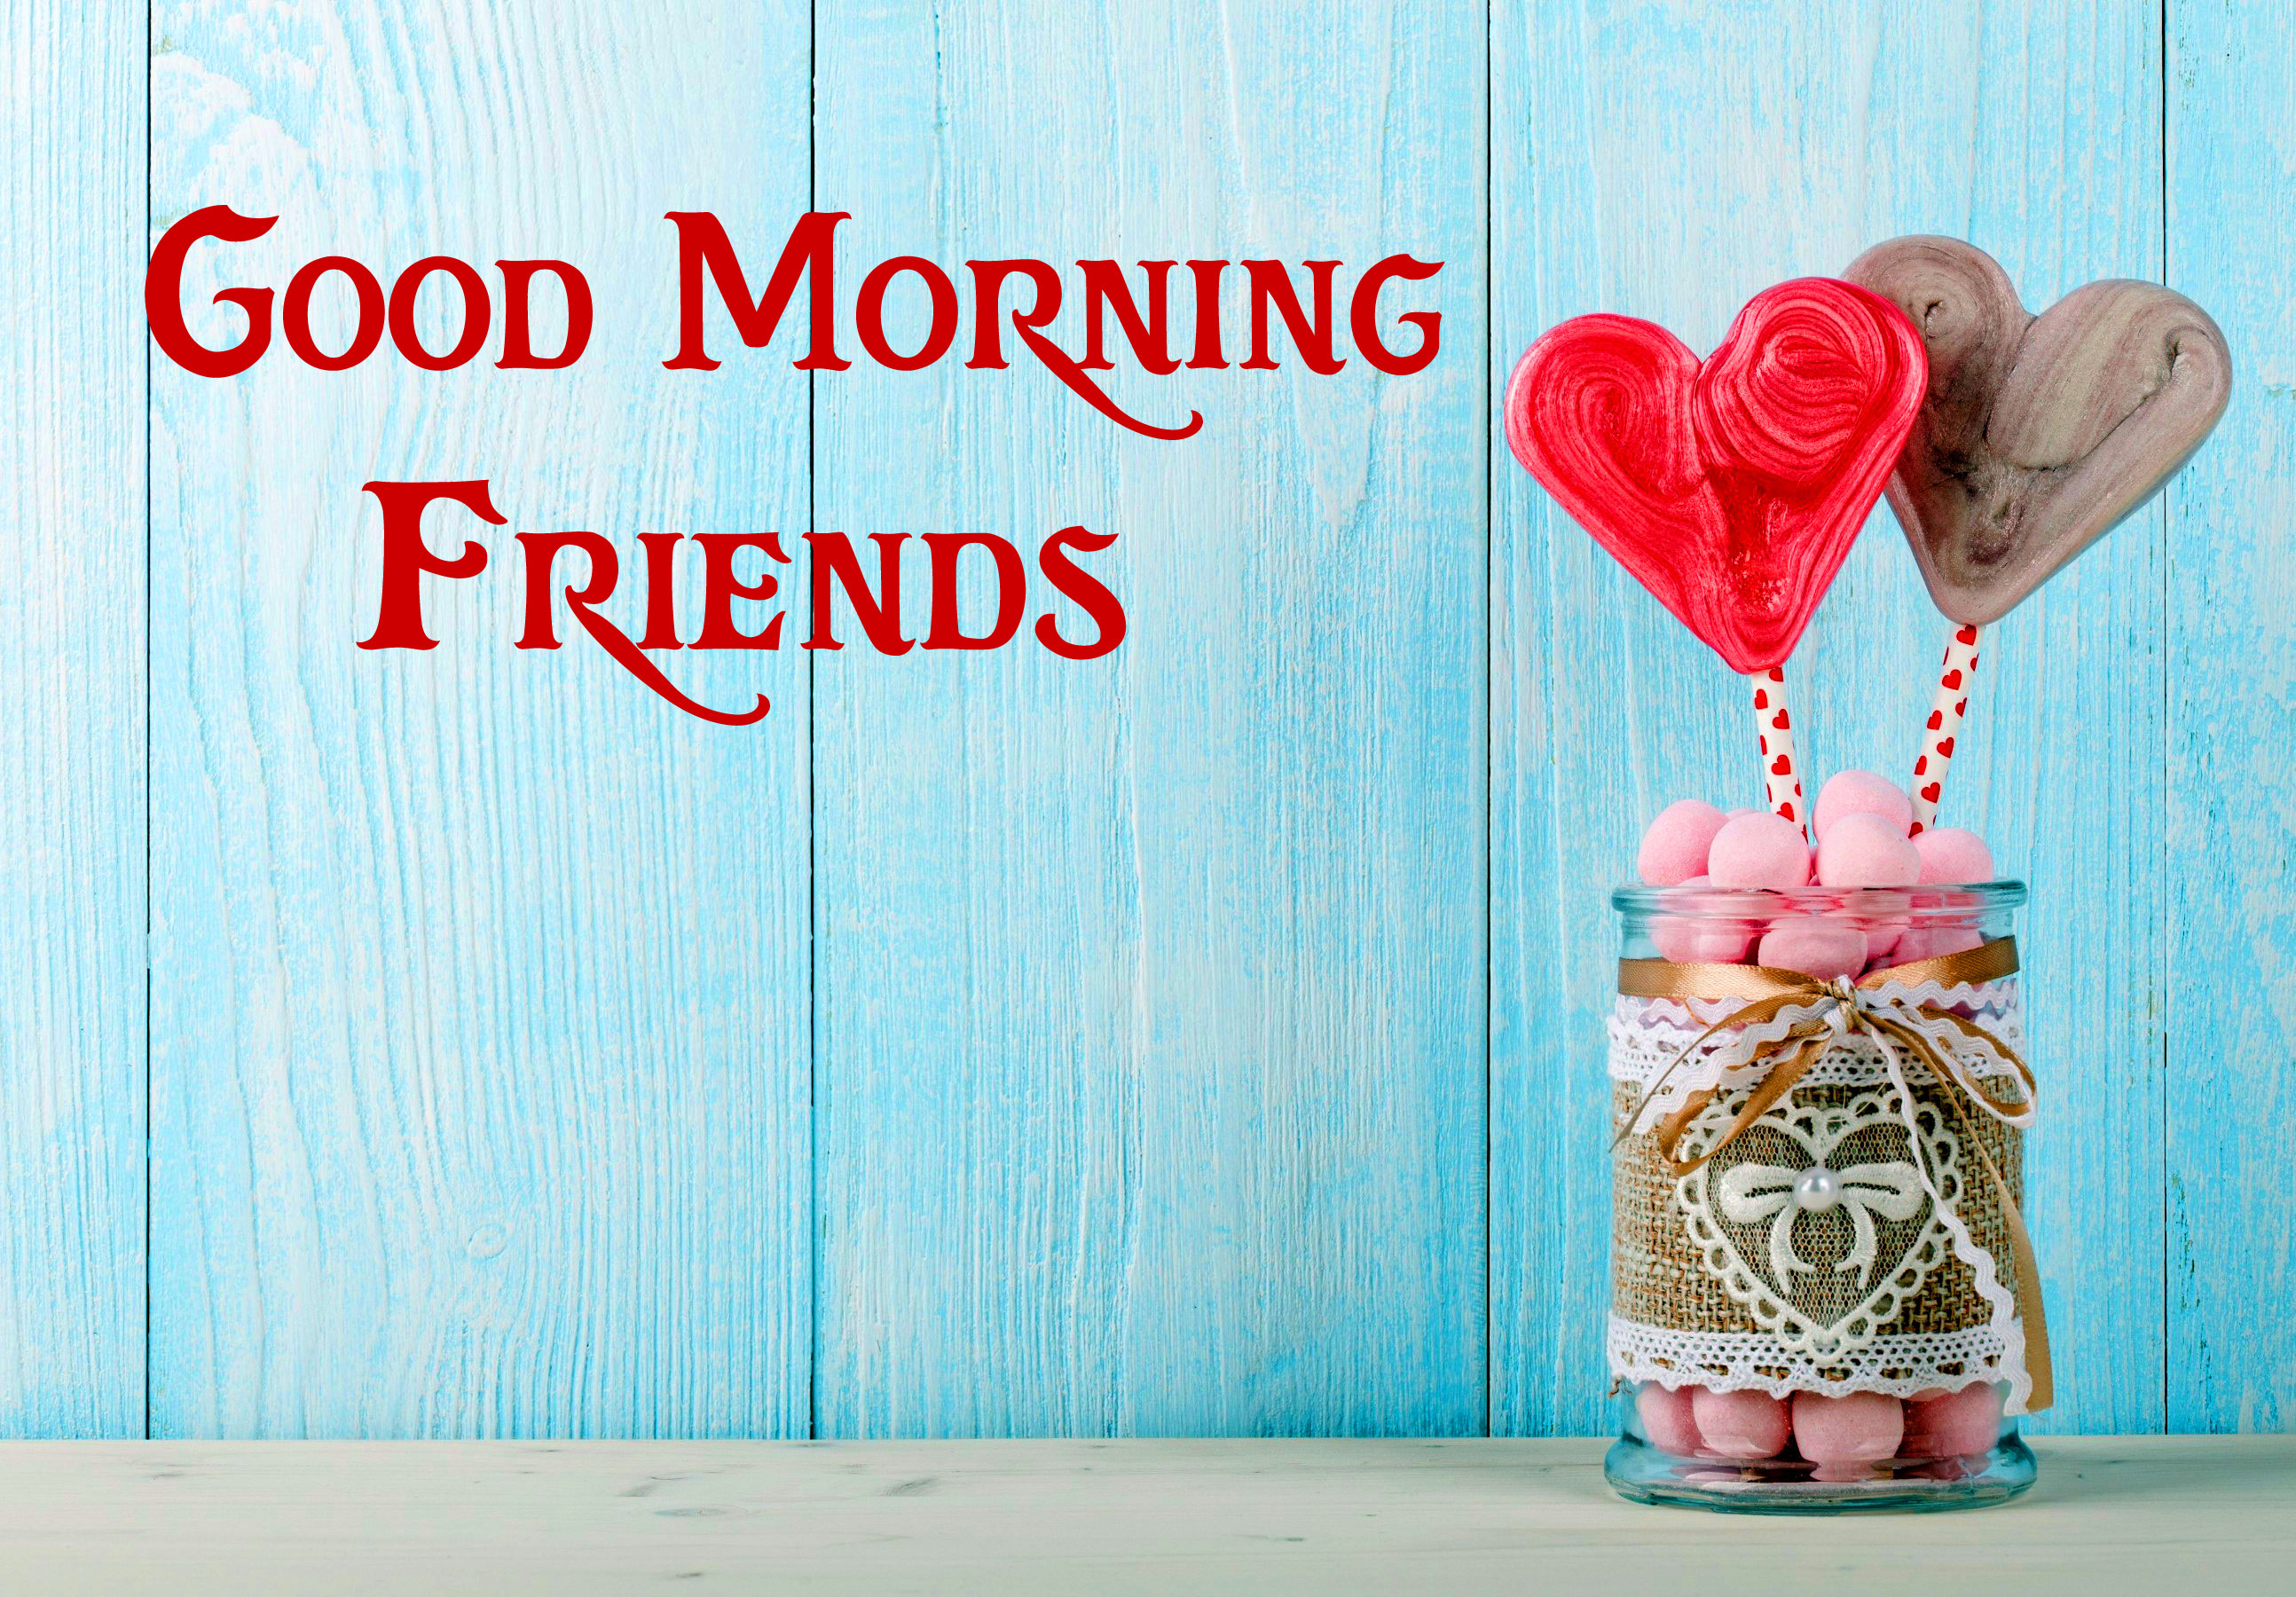 Good Morning Friends Images Wallpaper pics Free Download